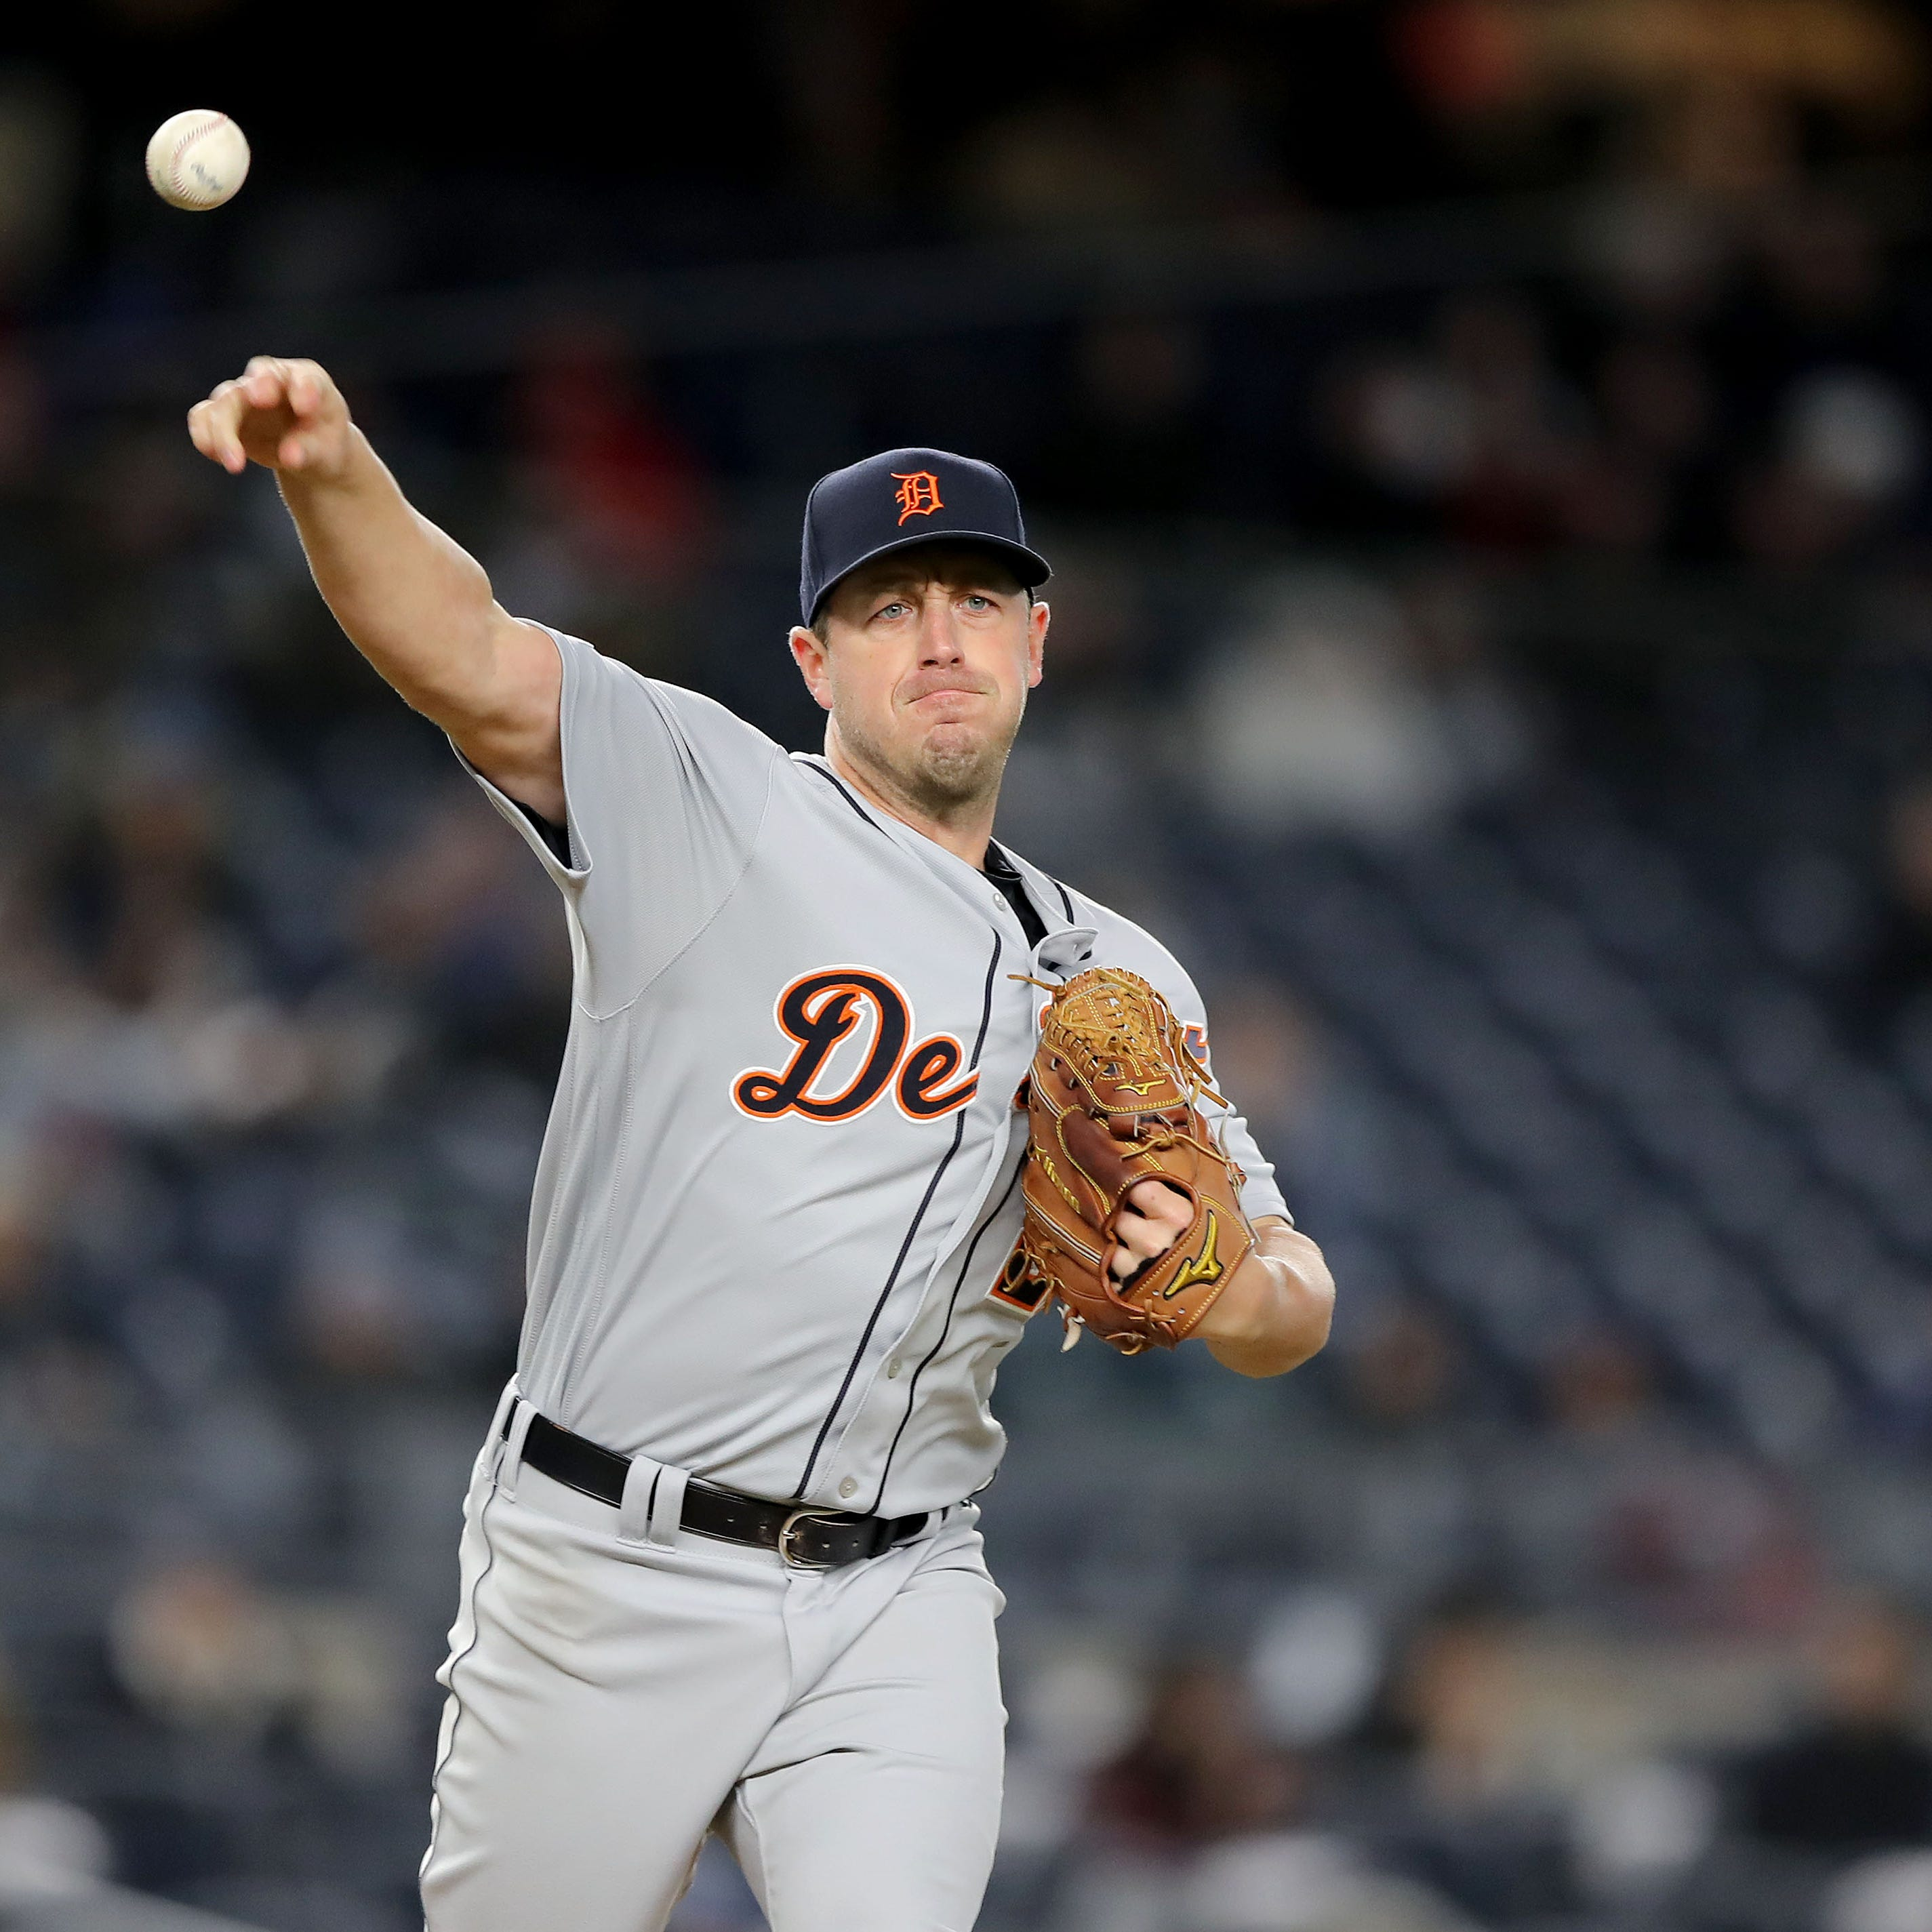 Detroit Tigers vs. Cleveland Indians: Time, starters, game info